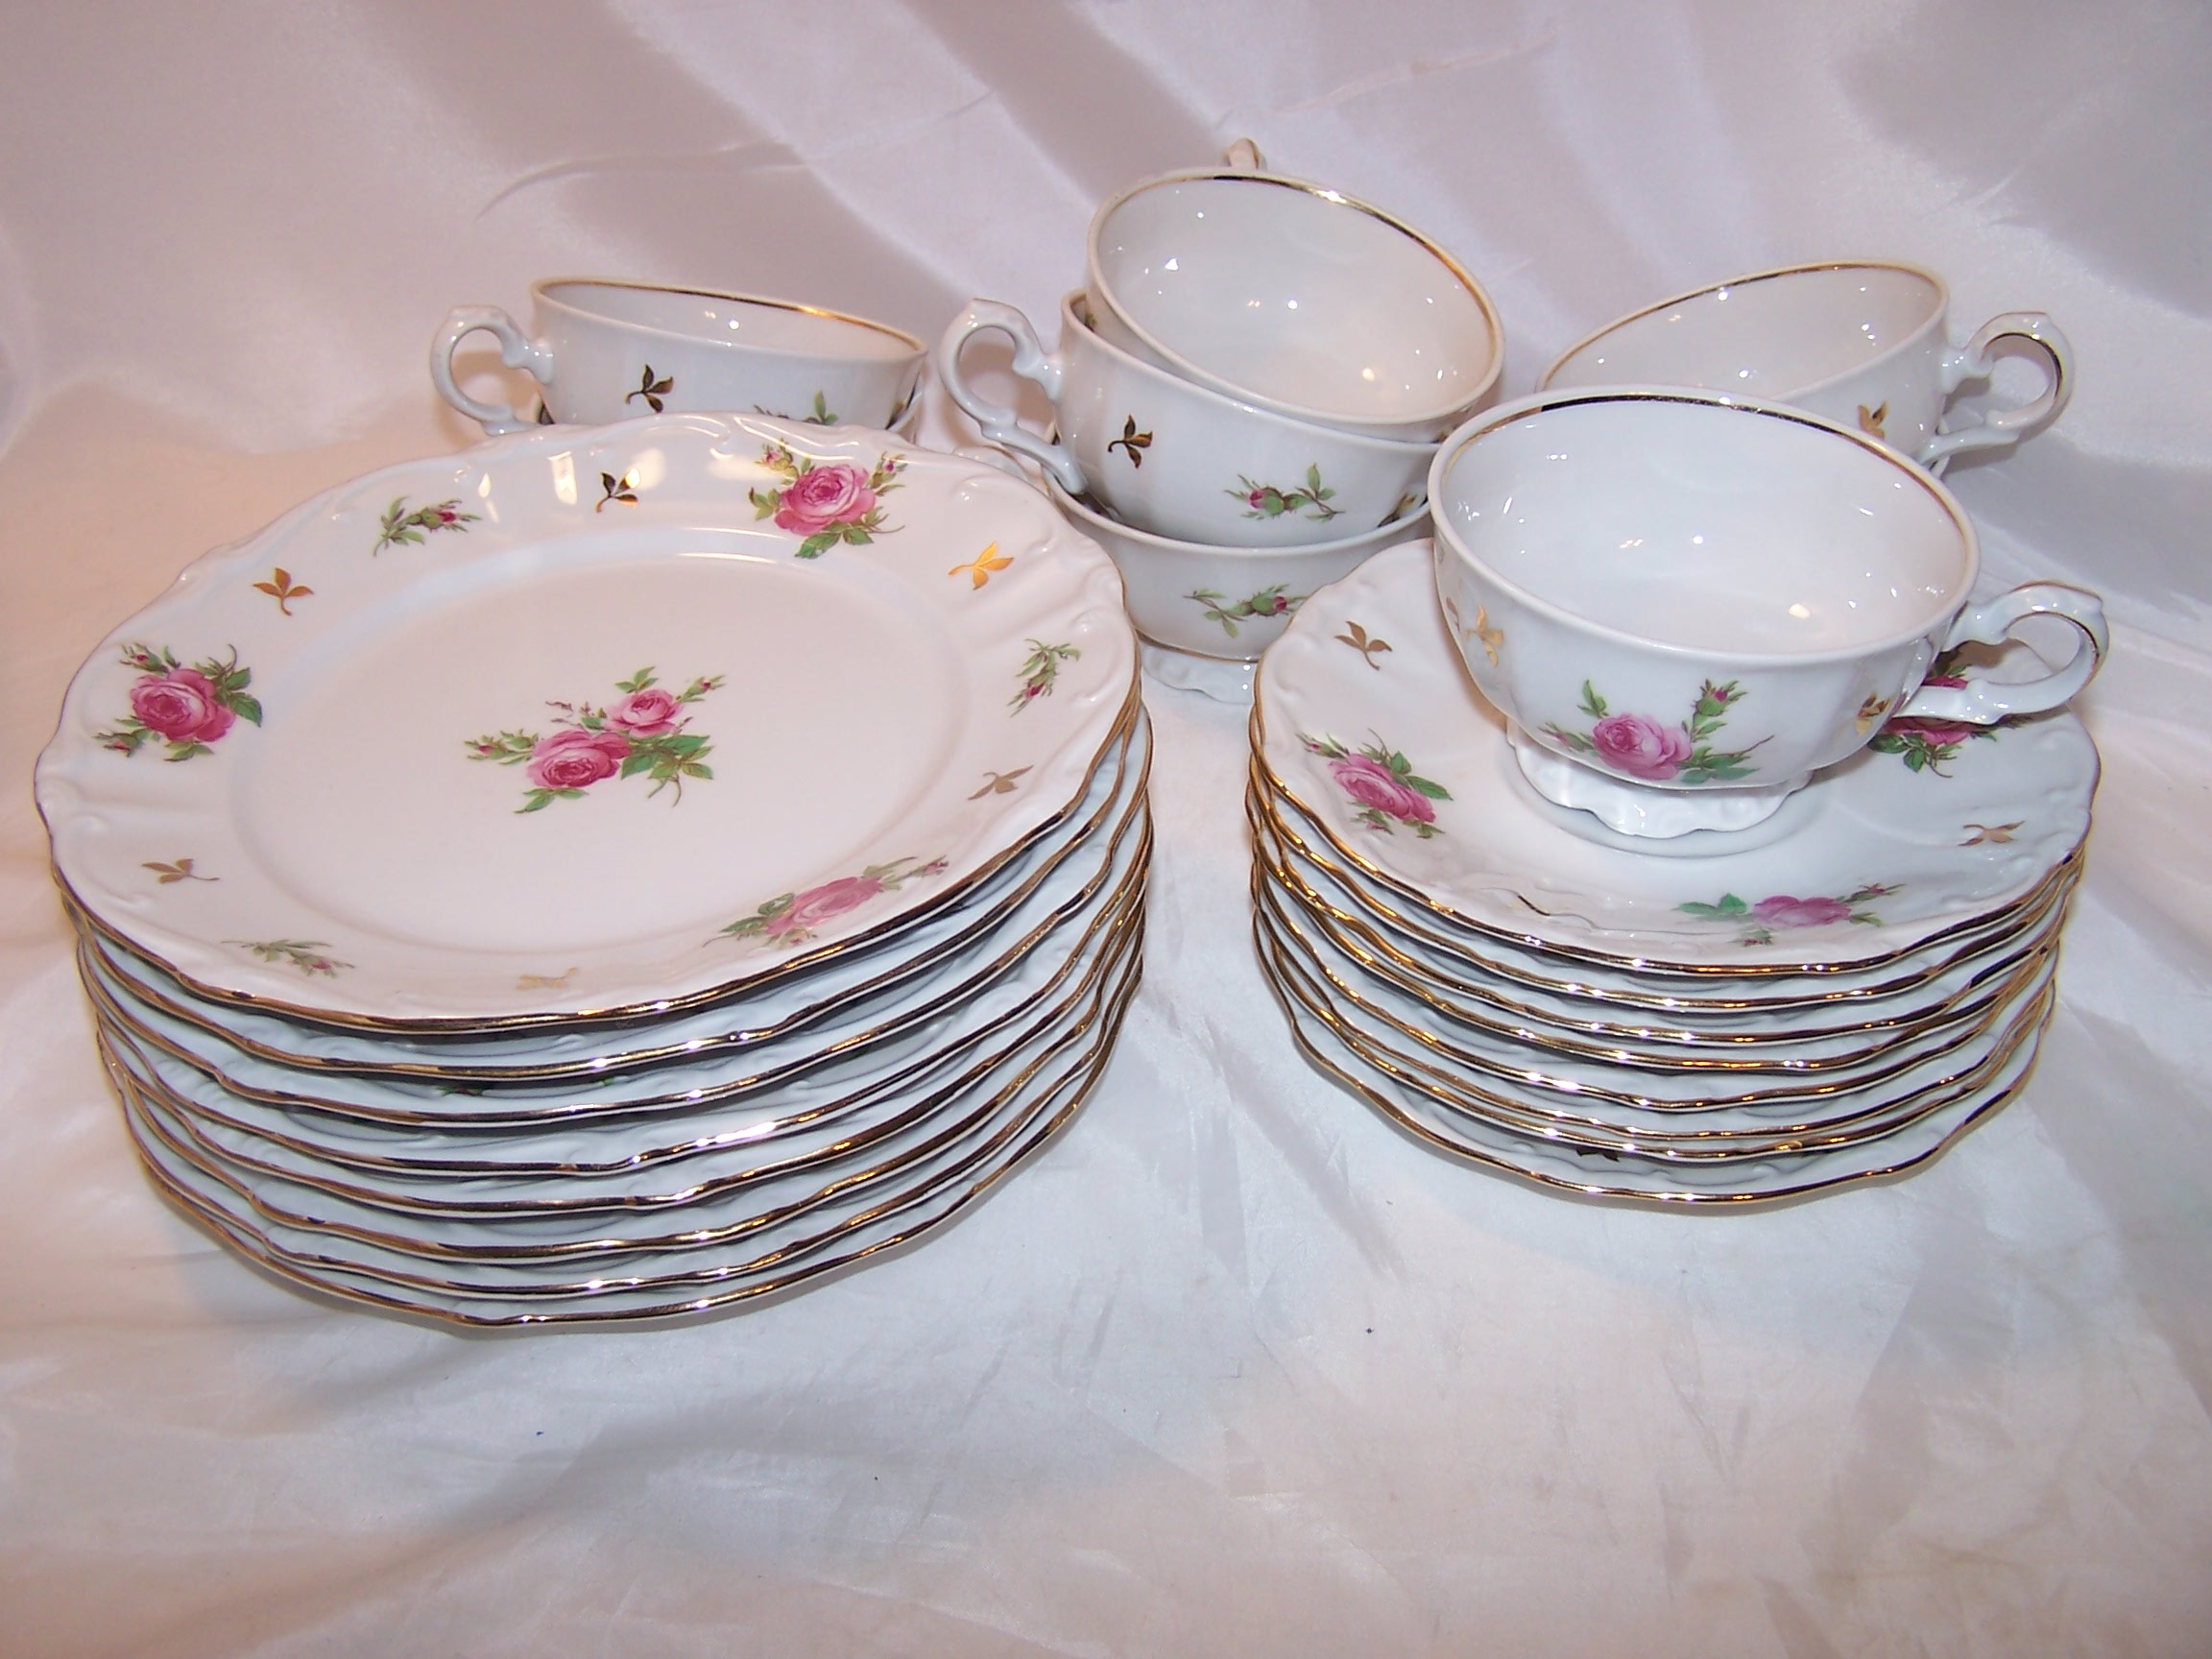 Image 1 of Bareuther Bavaria Dessert Service for 8, Germany, ca 1931 to 1950